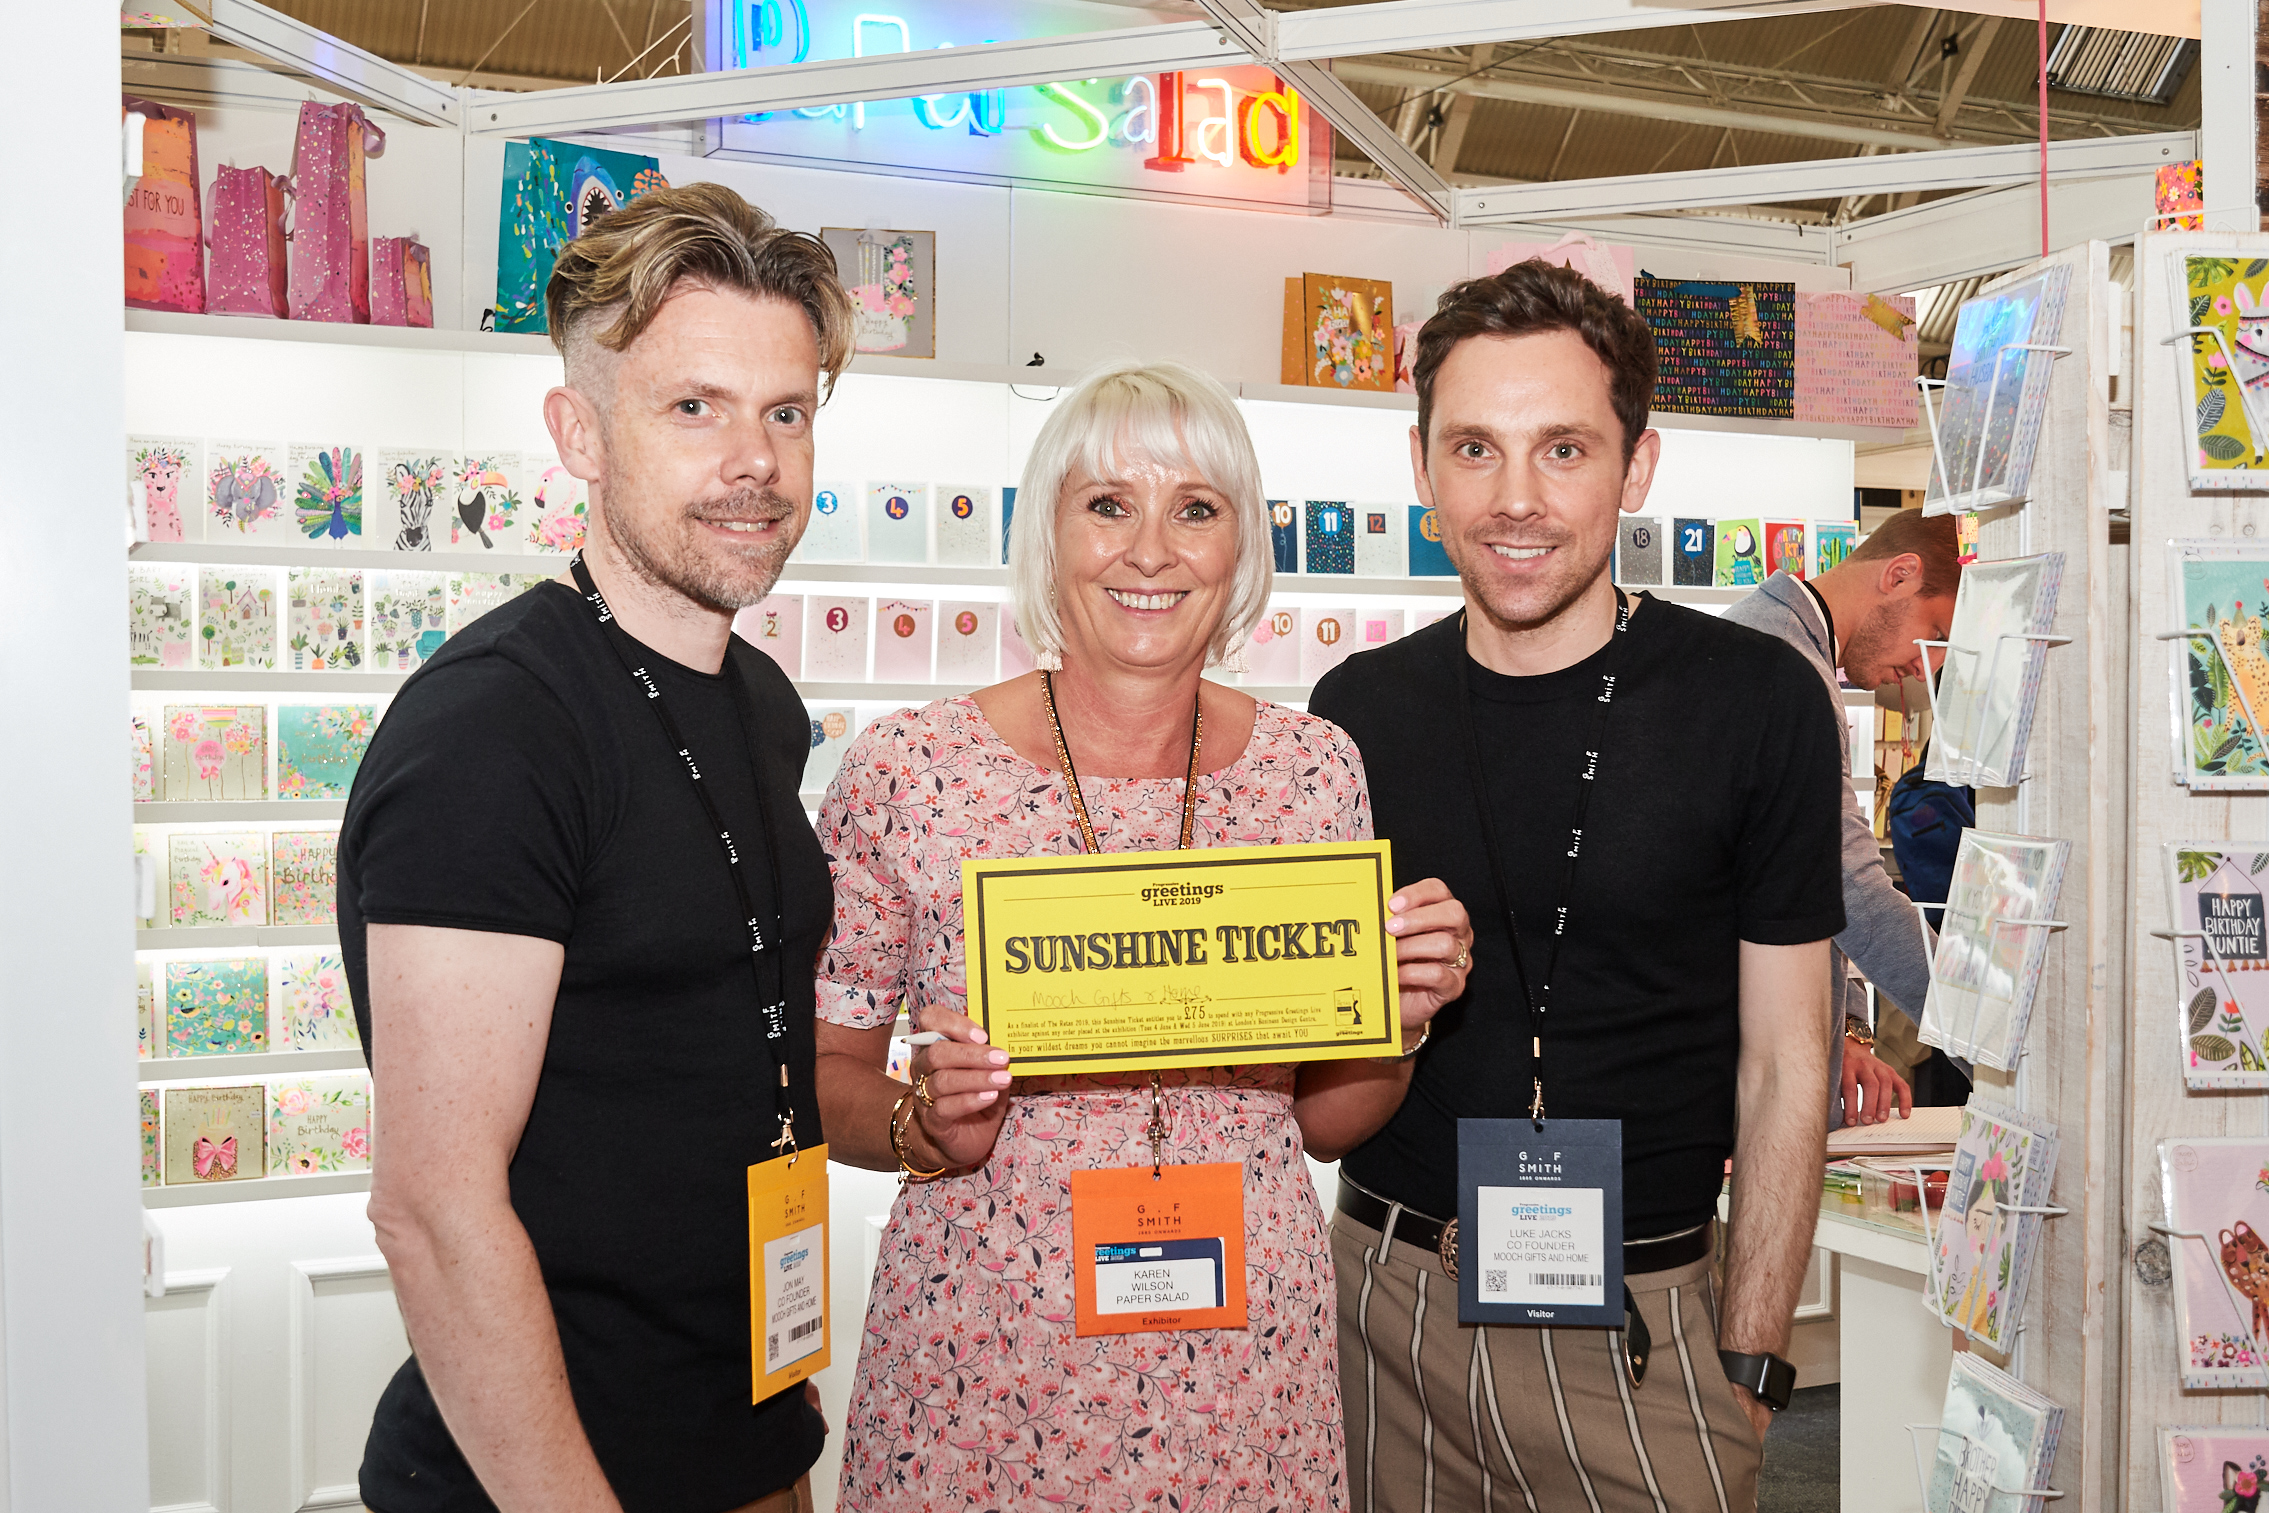 Above: Jon May (left) and Luke Jacks, co-owners of Mooch in Stourport-on-Severn and Bewdley, spending their Retas Sunshine ticket with Paper Salad's co-owner Karen Wilson at PG Live.